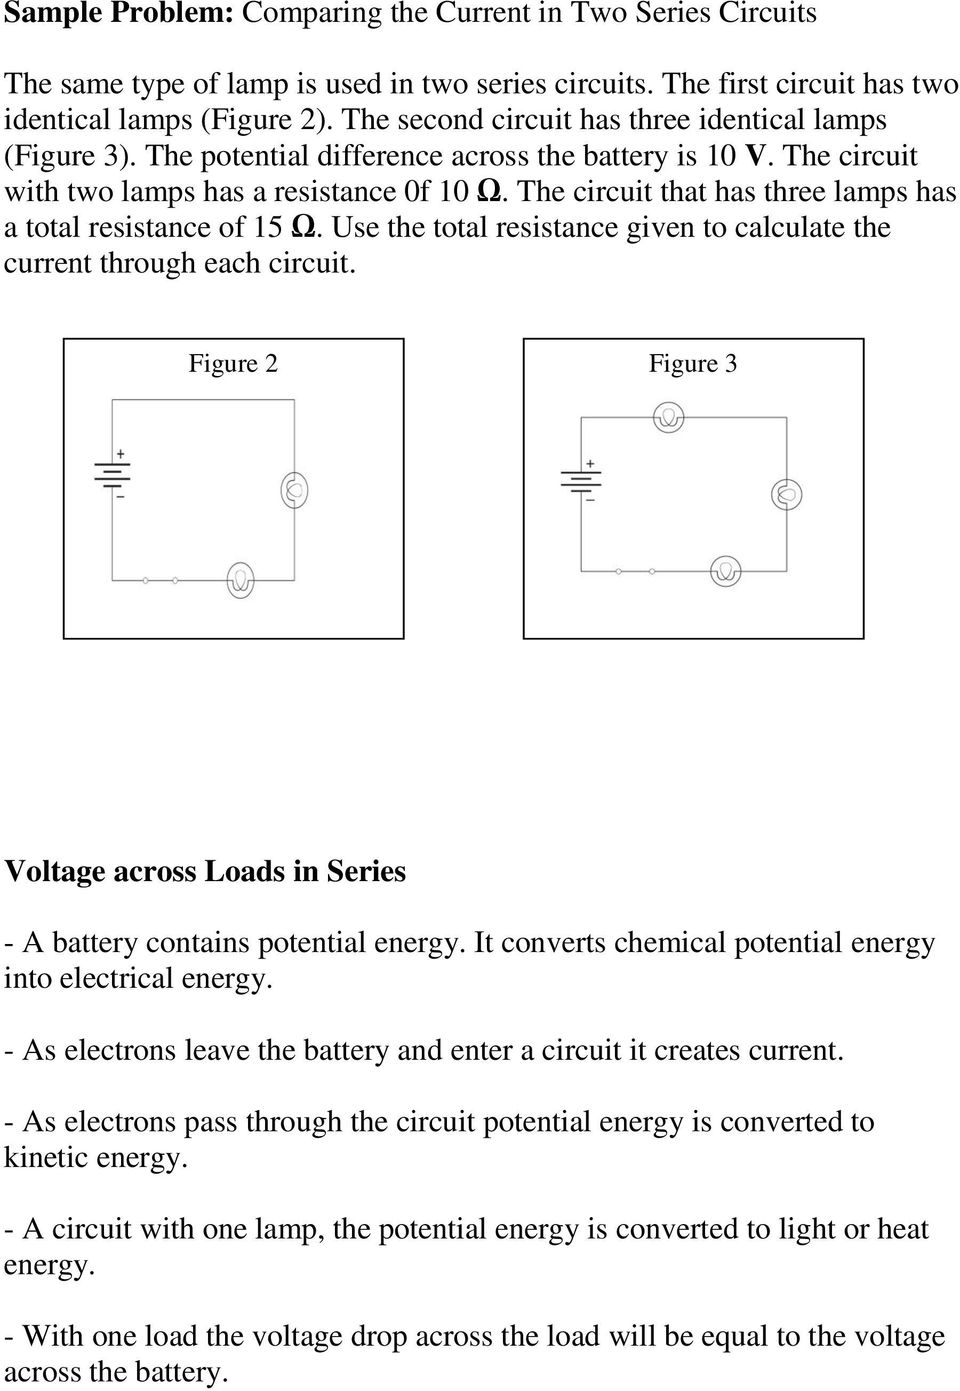 1310 How Series And Parallel Circuits Differ Pg Pdf Does Someone Calculate The Total Resistance Of Such A Circuit That Has Three Lamps 15 Use